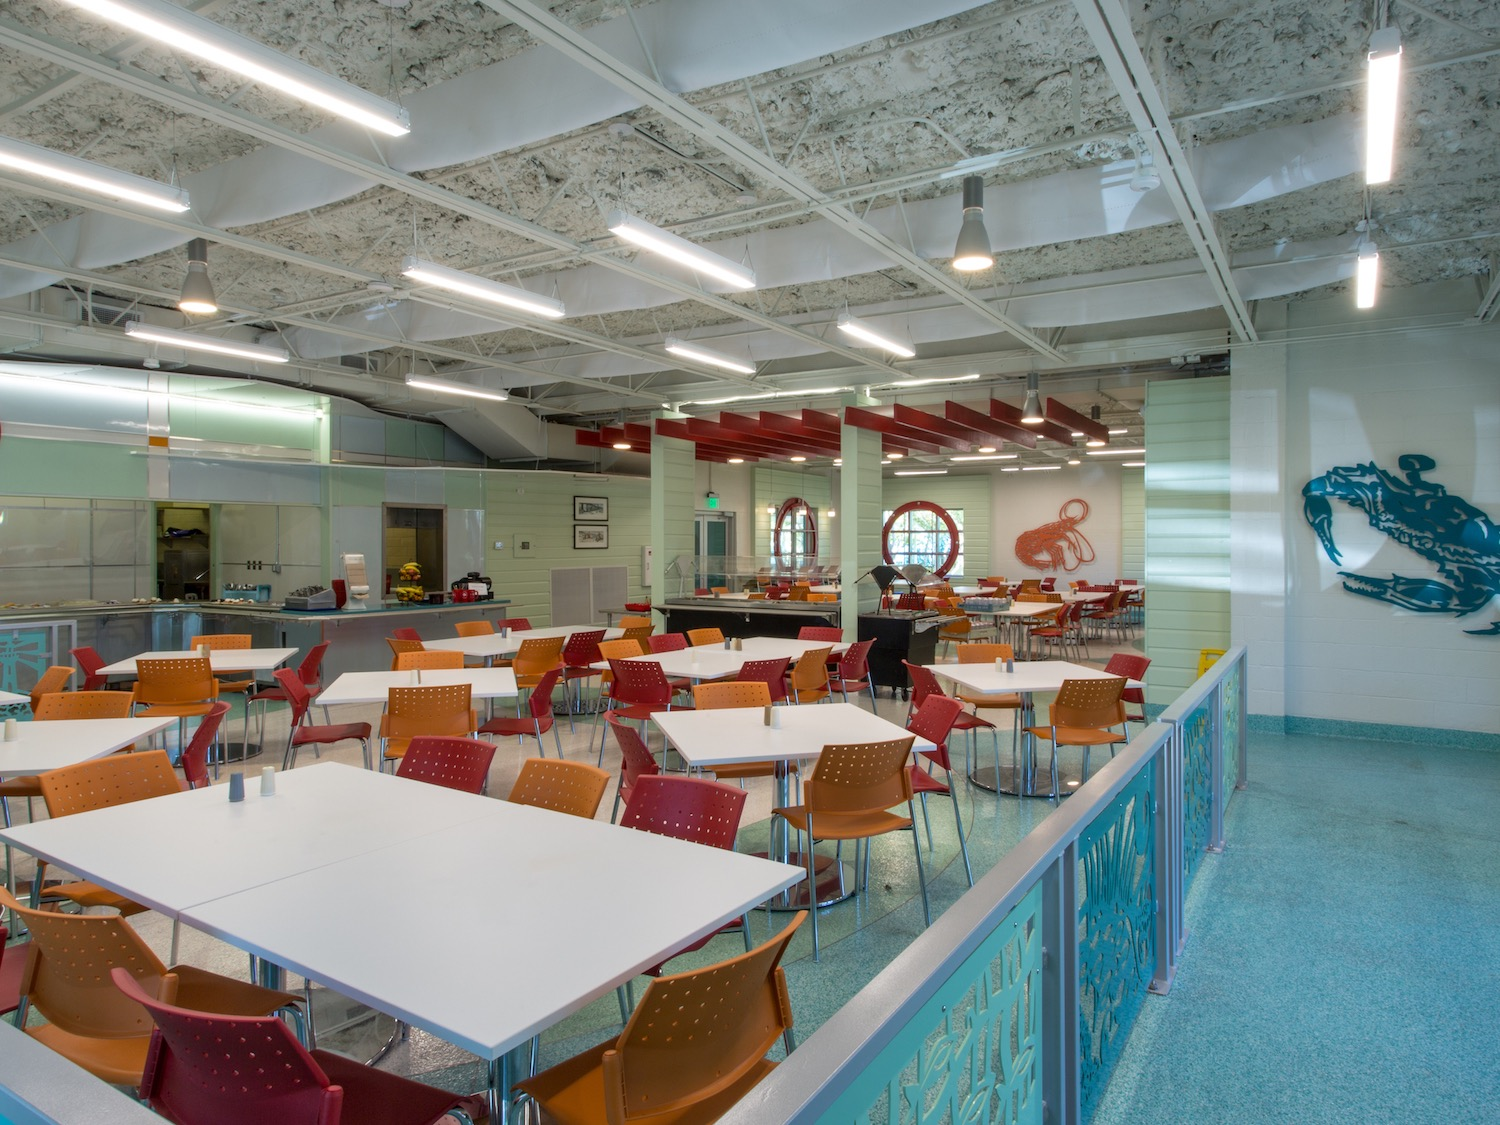 May's Cafeteria